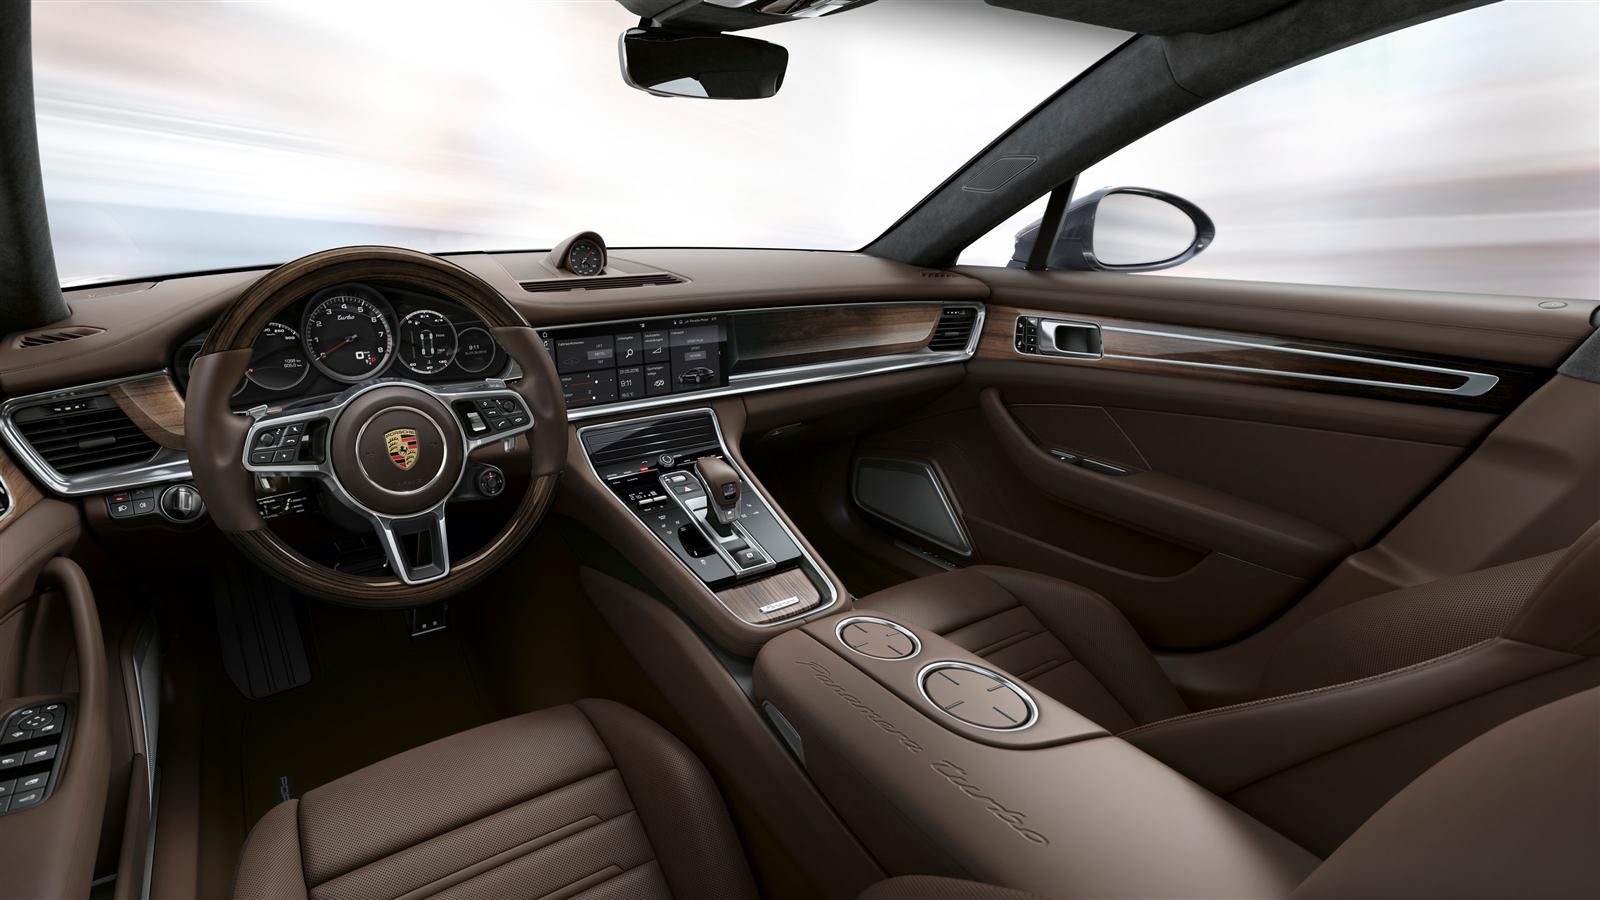 Porsche Exclusive Enhances The New Panamera Inside And Out